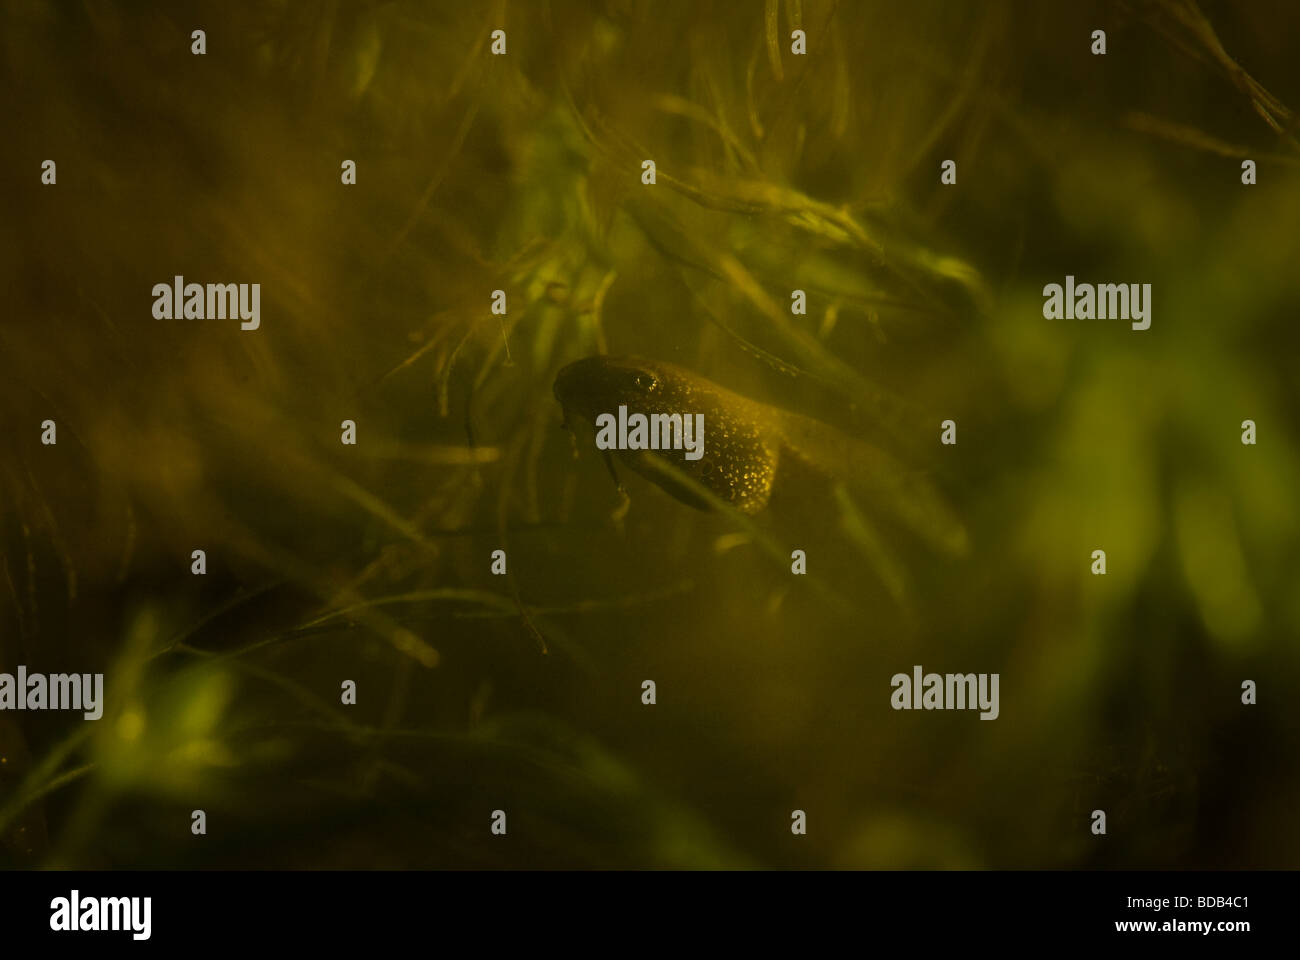 Tadpole of the Common Frog, Rana temporaria, lurking in pond weed. - Stock Image